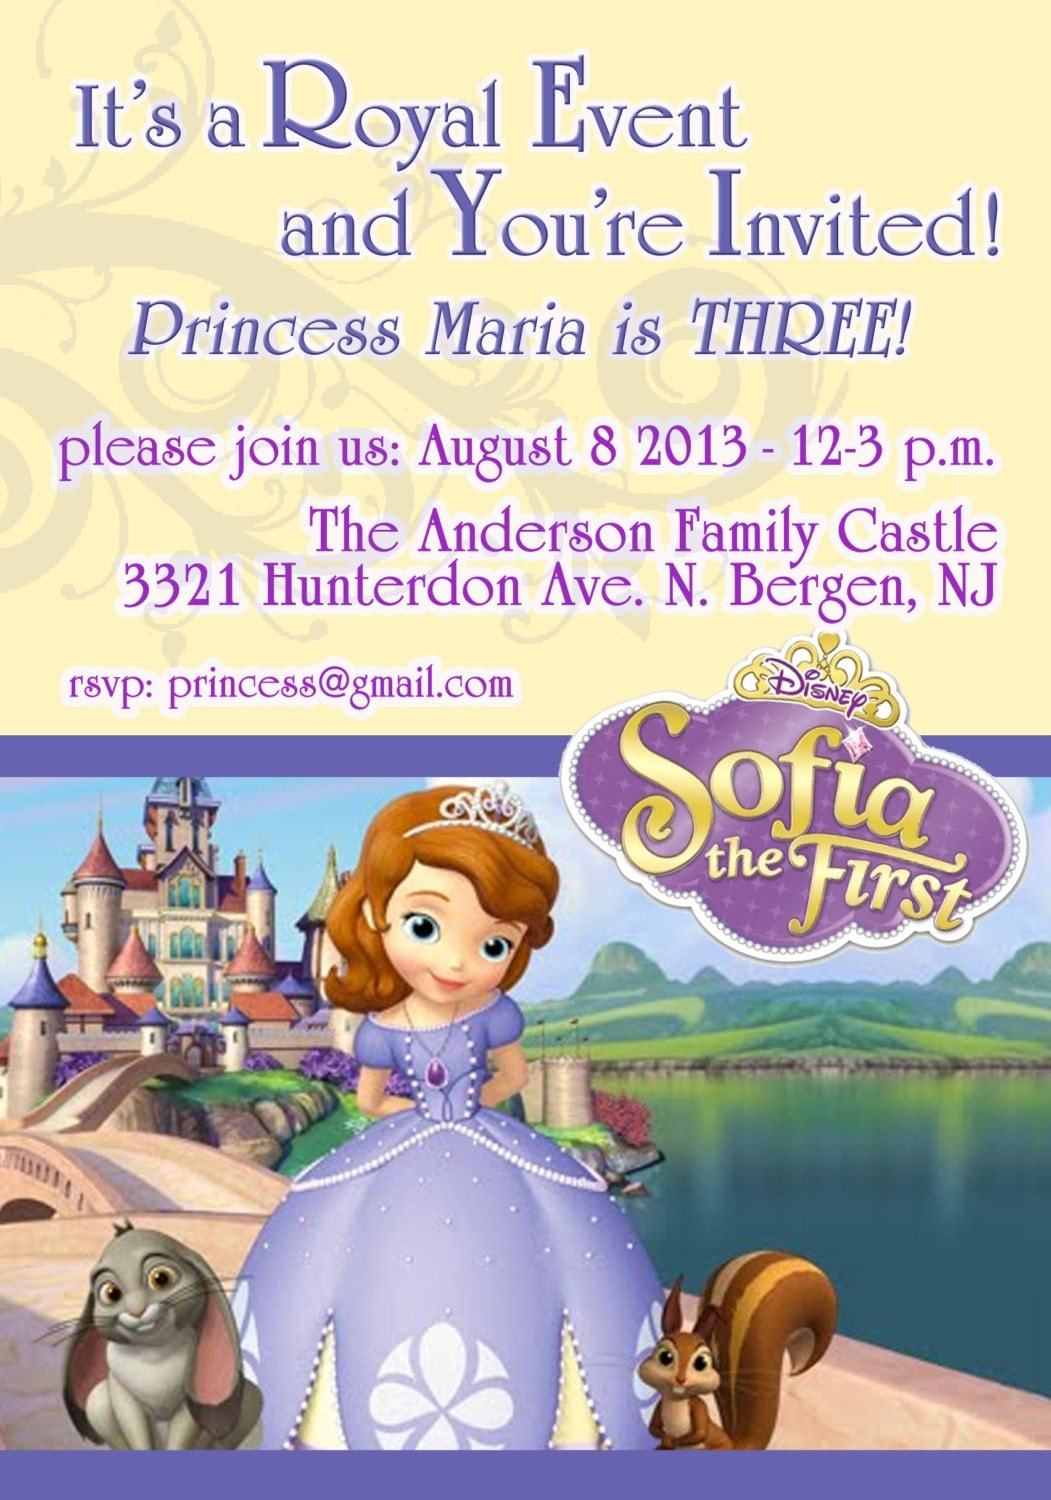 Sofia The First Party Invitations was beautiful invitation layout